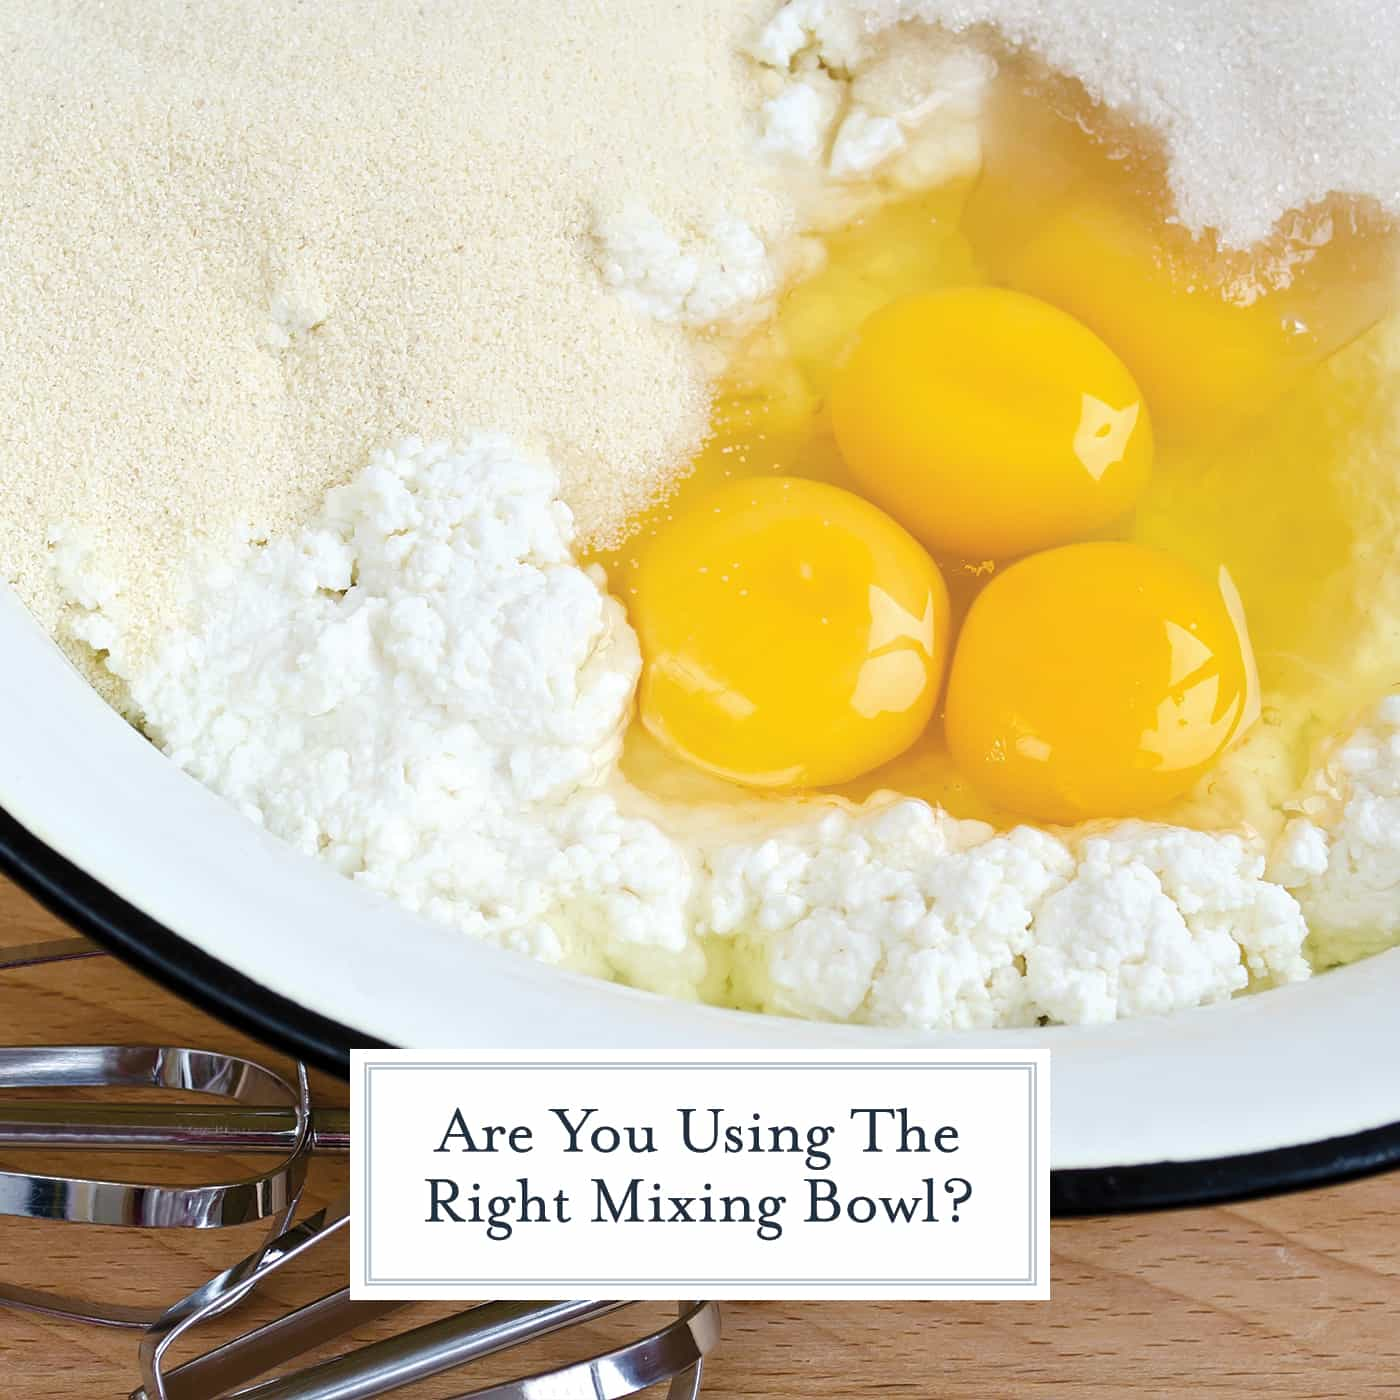 Are you using the wrong mixing bowl for the job? This basic tutorial will tell you which type of mixing bowl to use when: non-metallic for acids, no glass for egg whites and more! #mixingbowls www.savoryexperiments.com